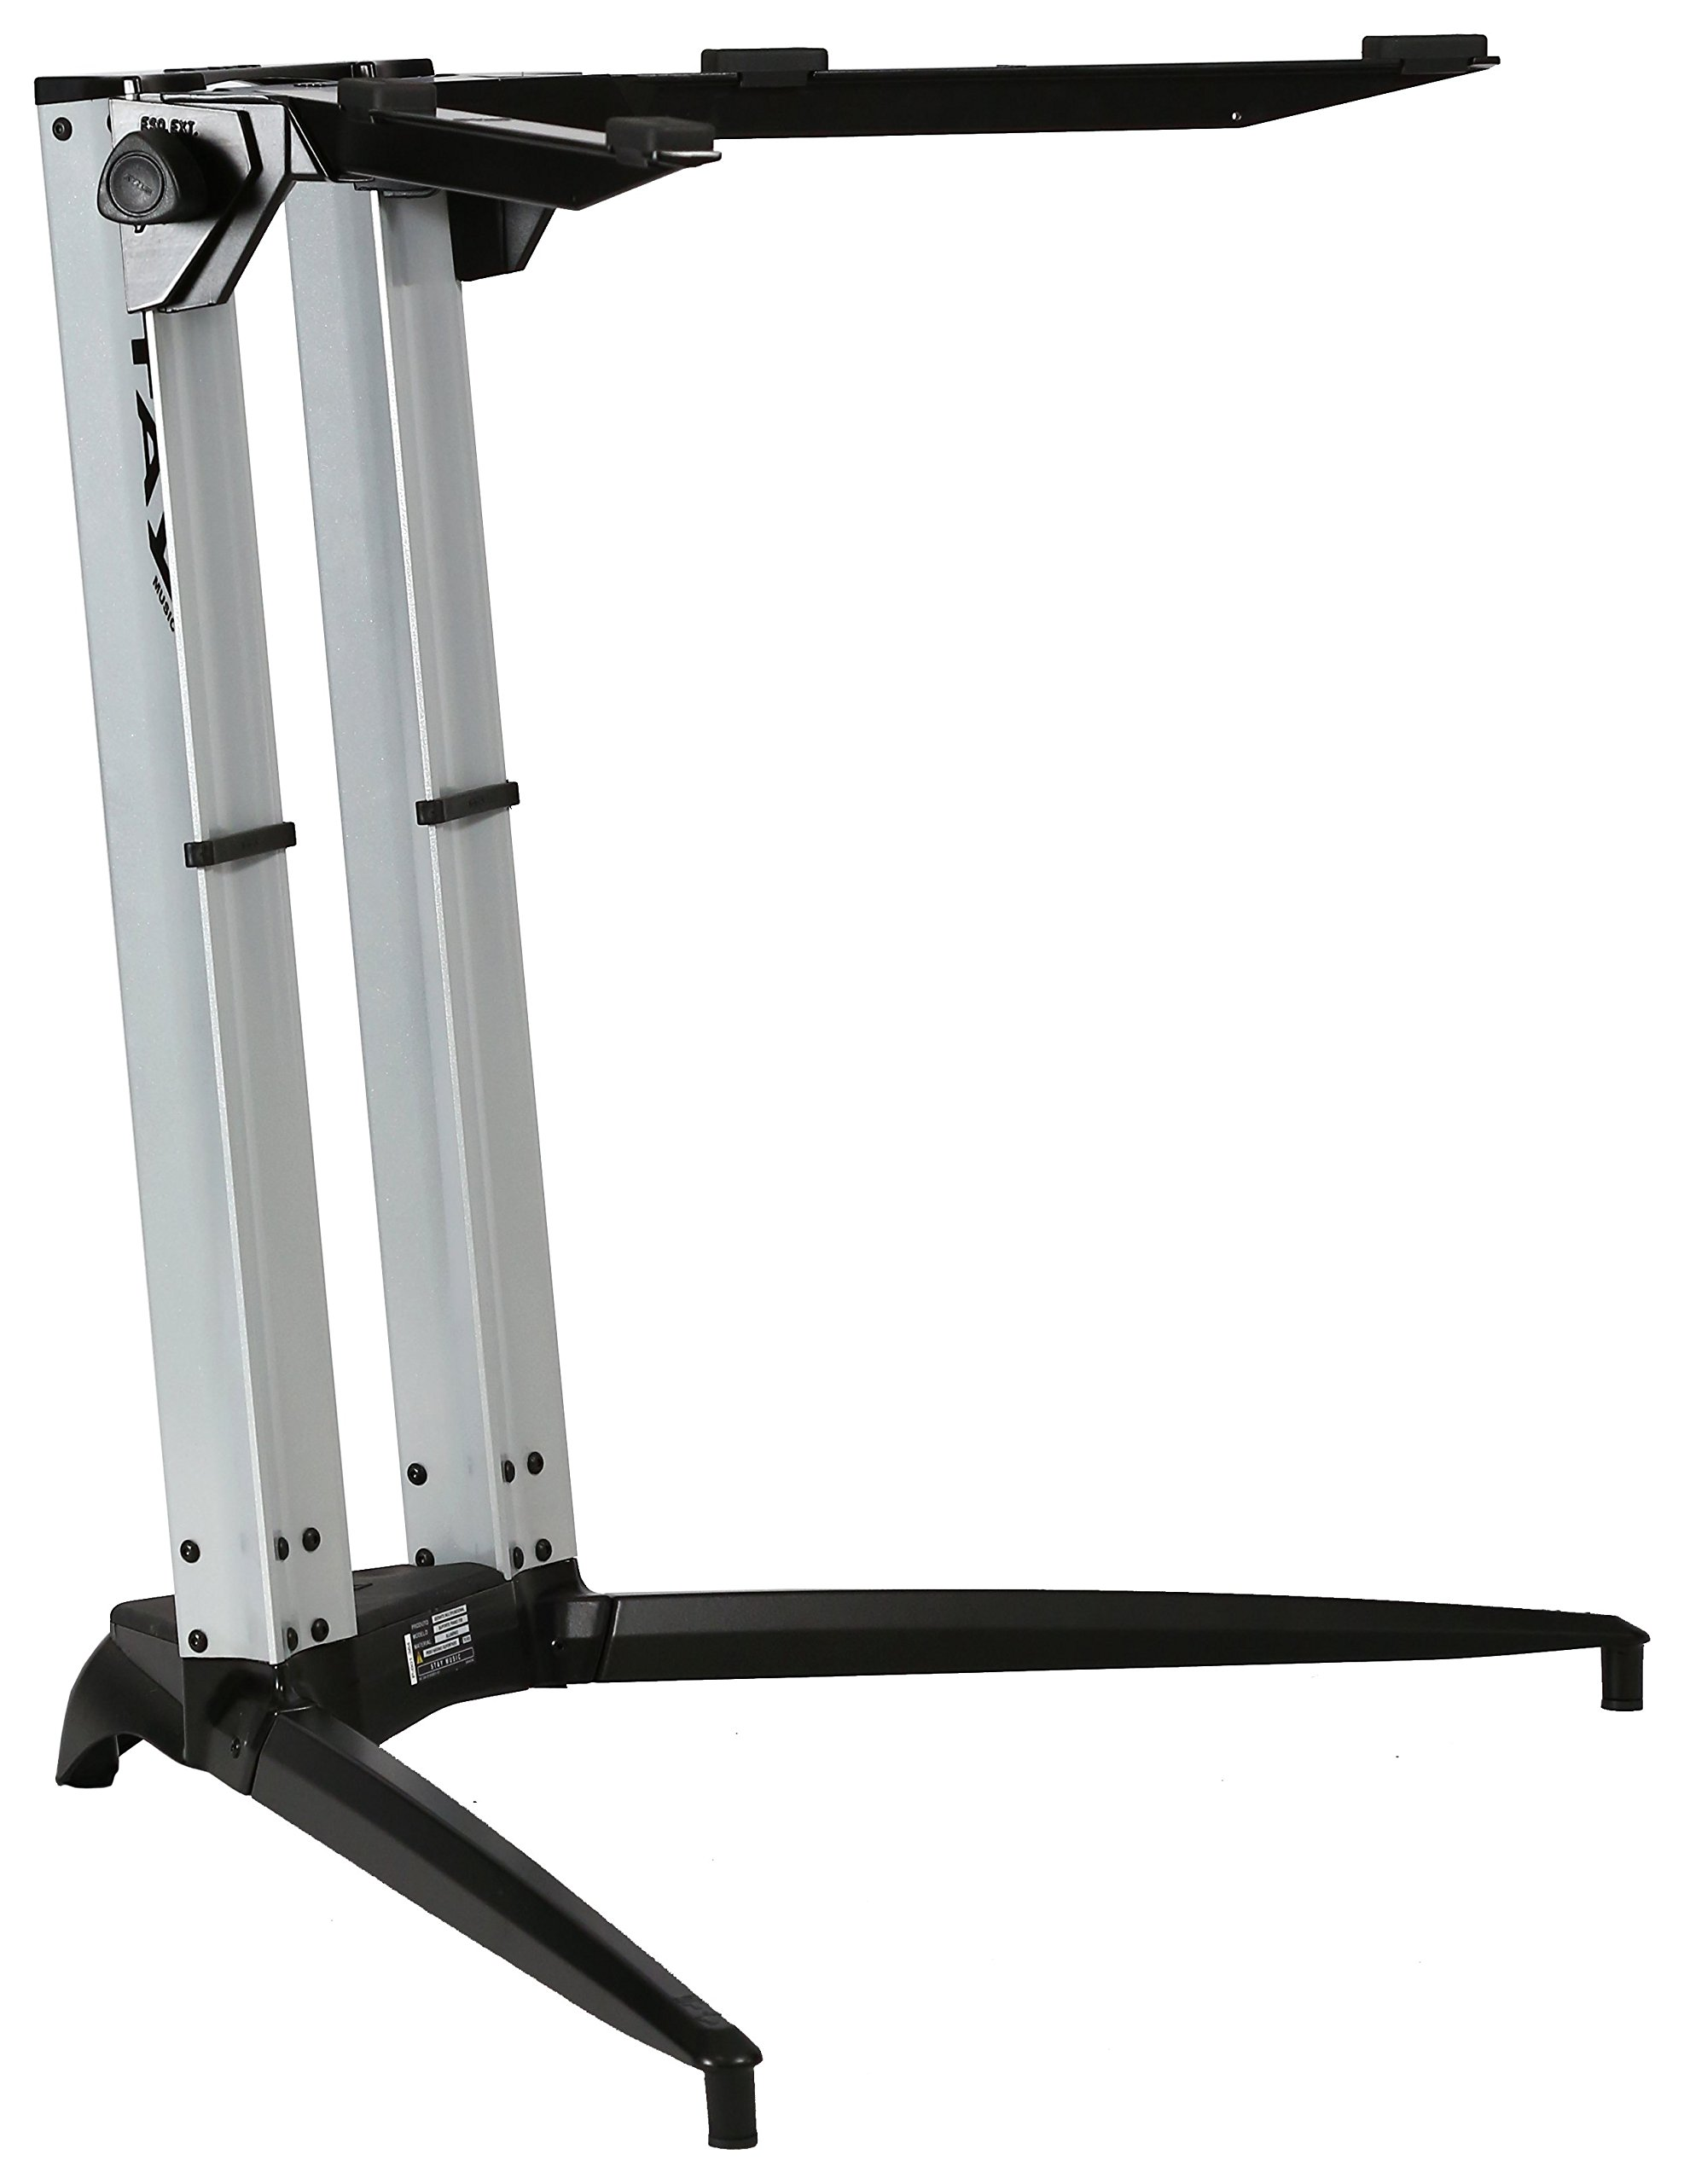 Piano Series 27 Sitting Height Single-Tier Keyboard Stand Silver (PIANO 700-01-SLV)